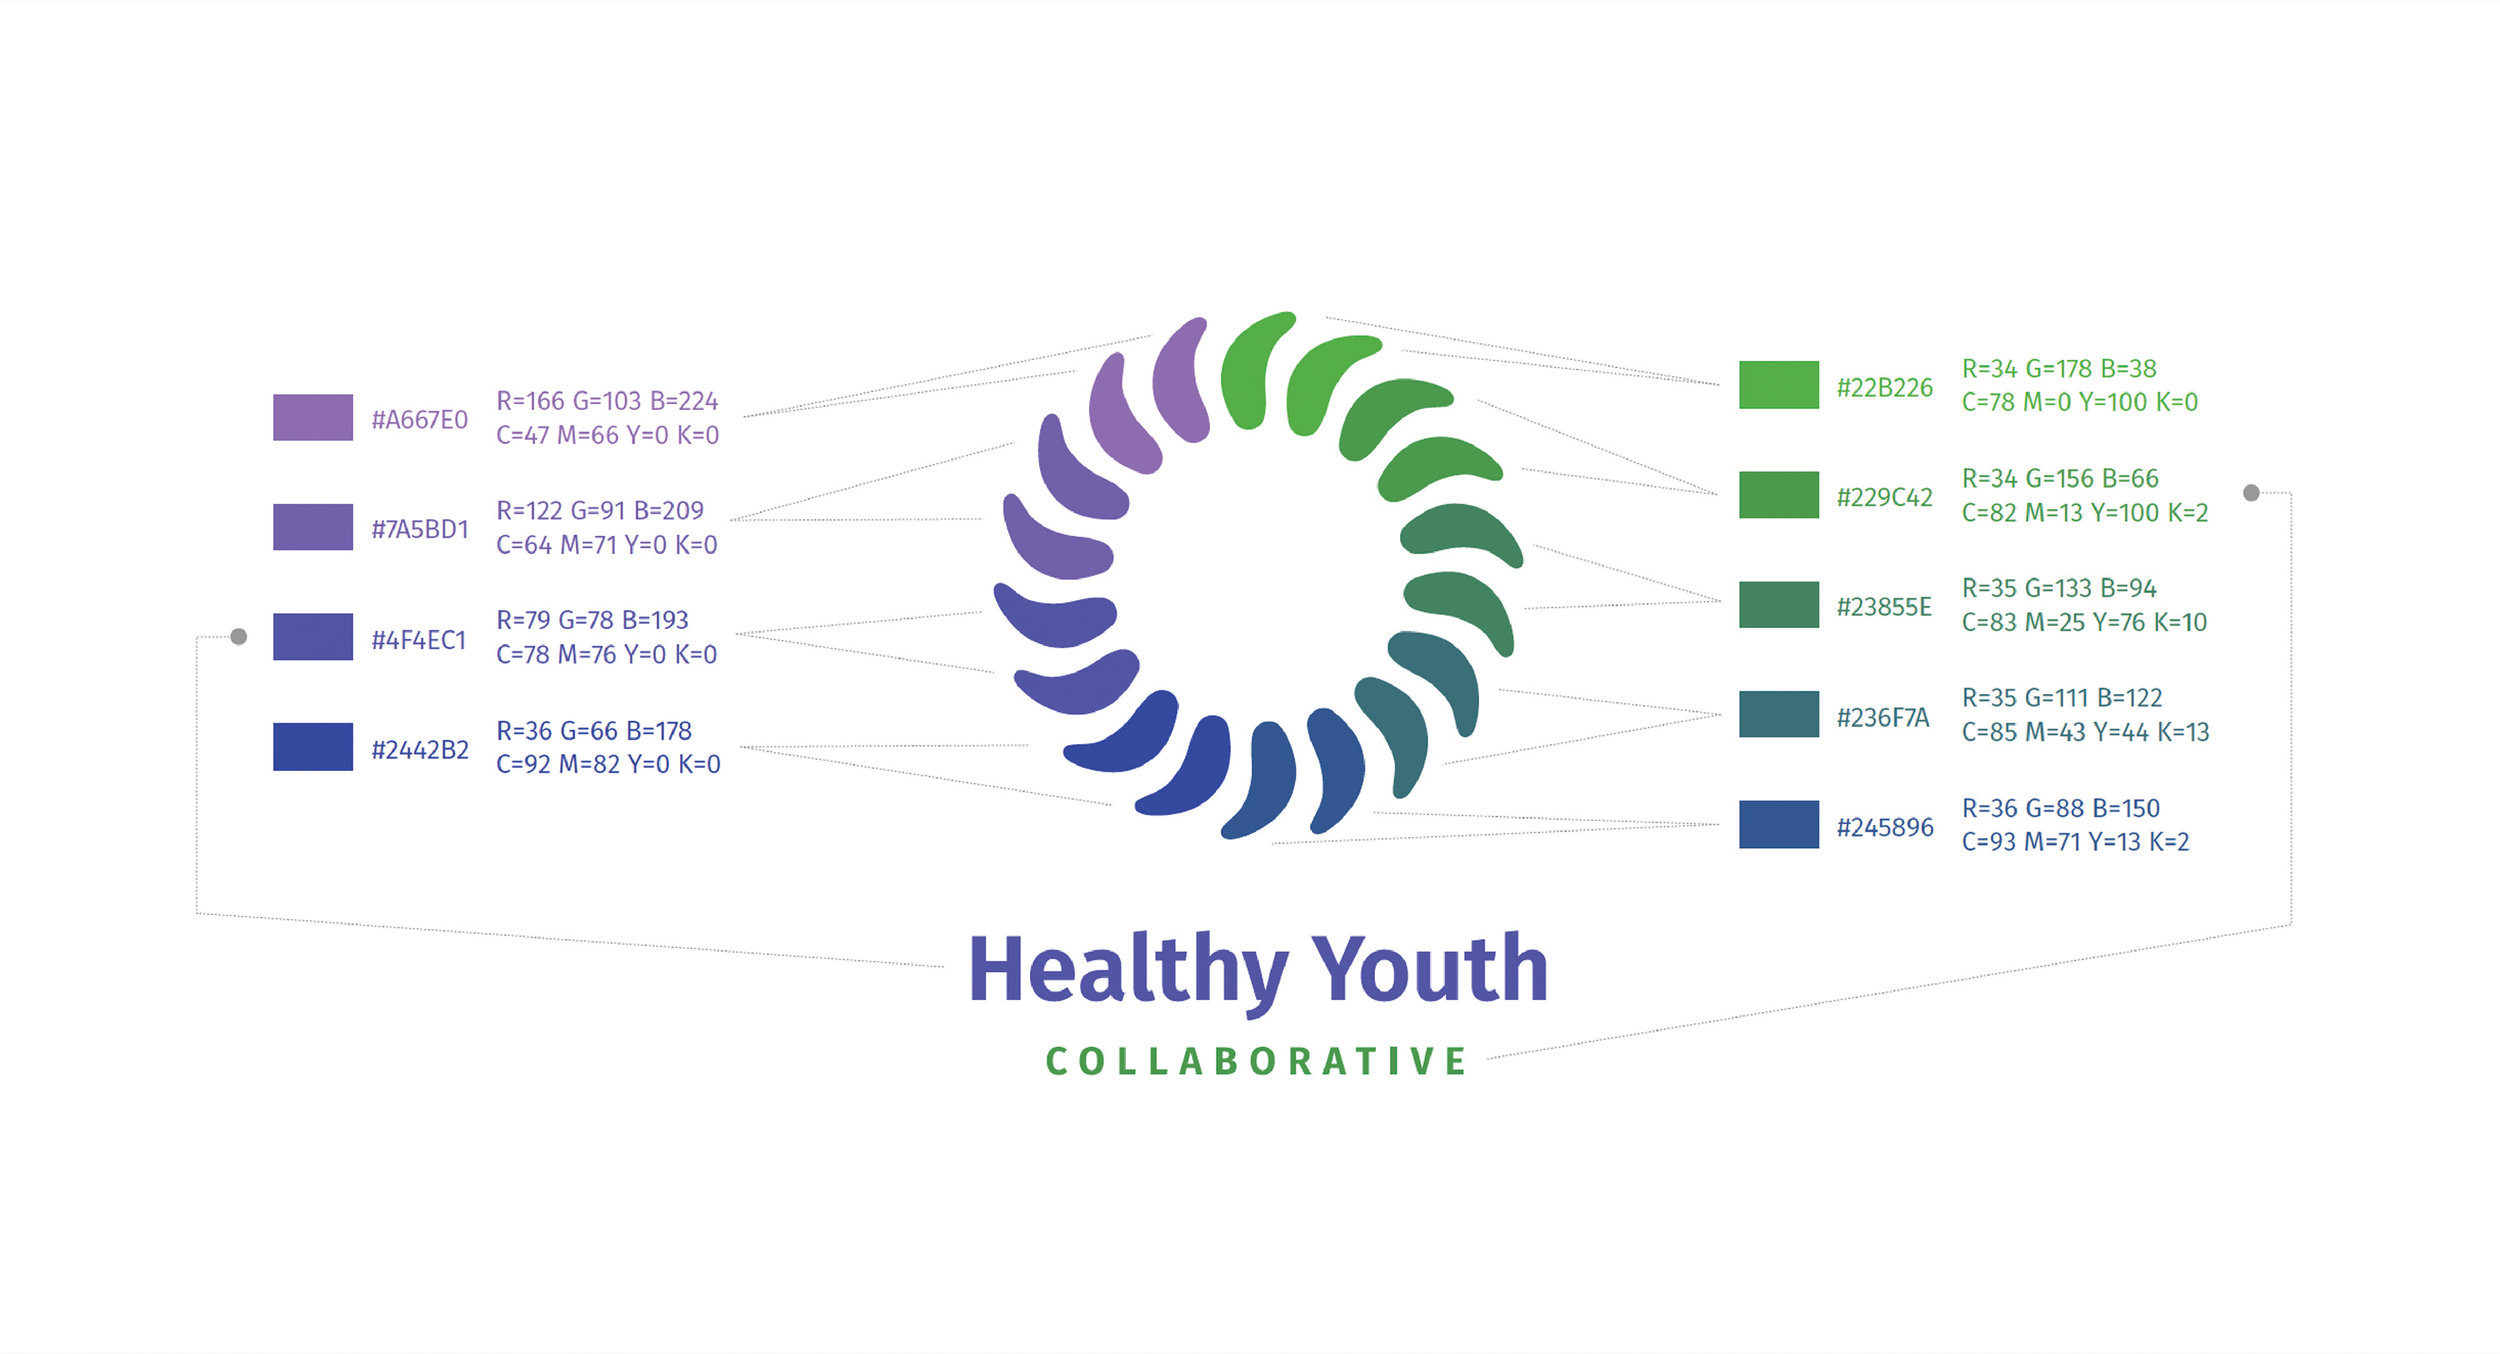 WBCG_HealthYouth_Research Compilation-08-small-rgb.jpg